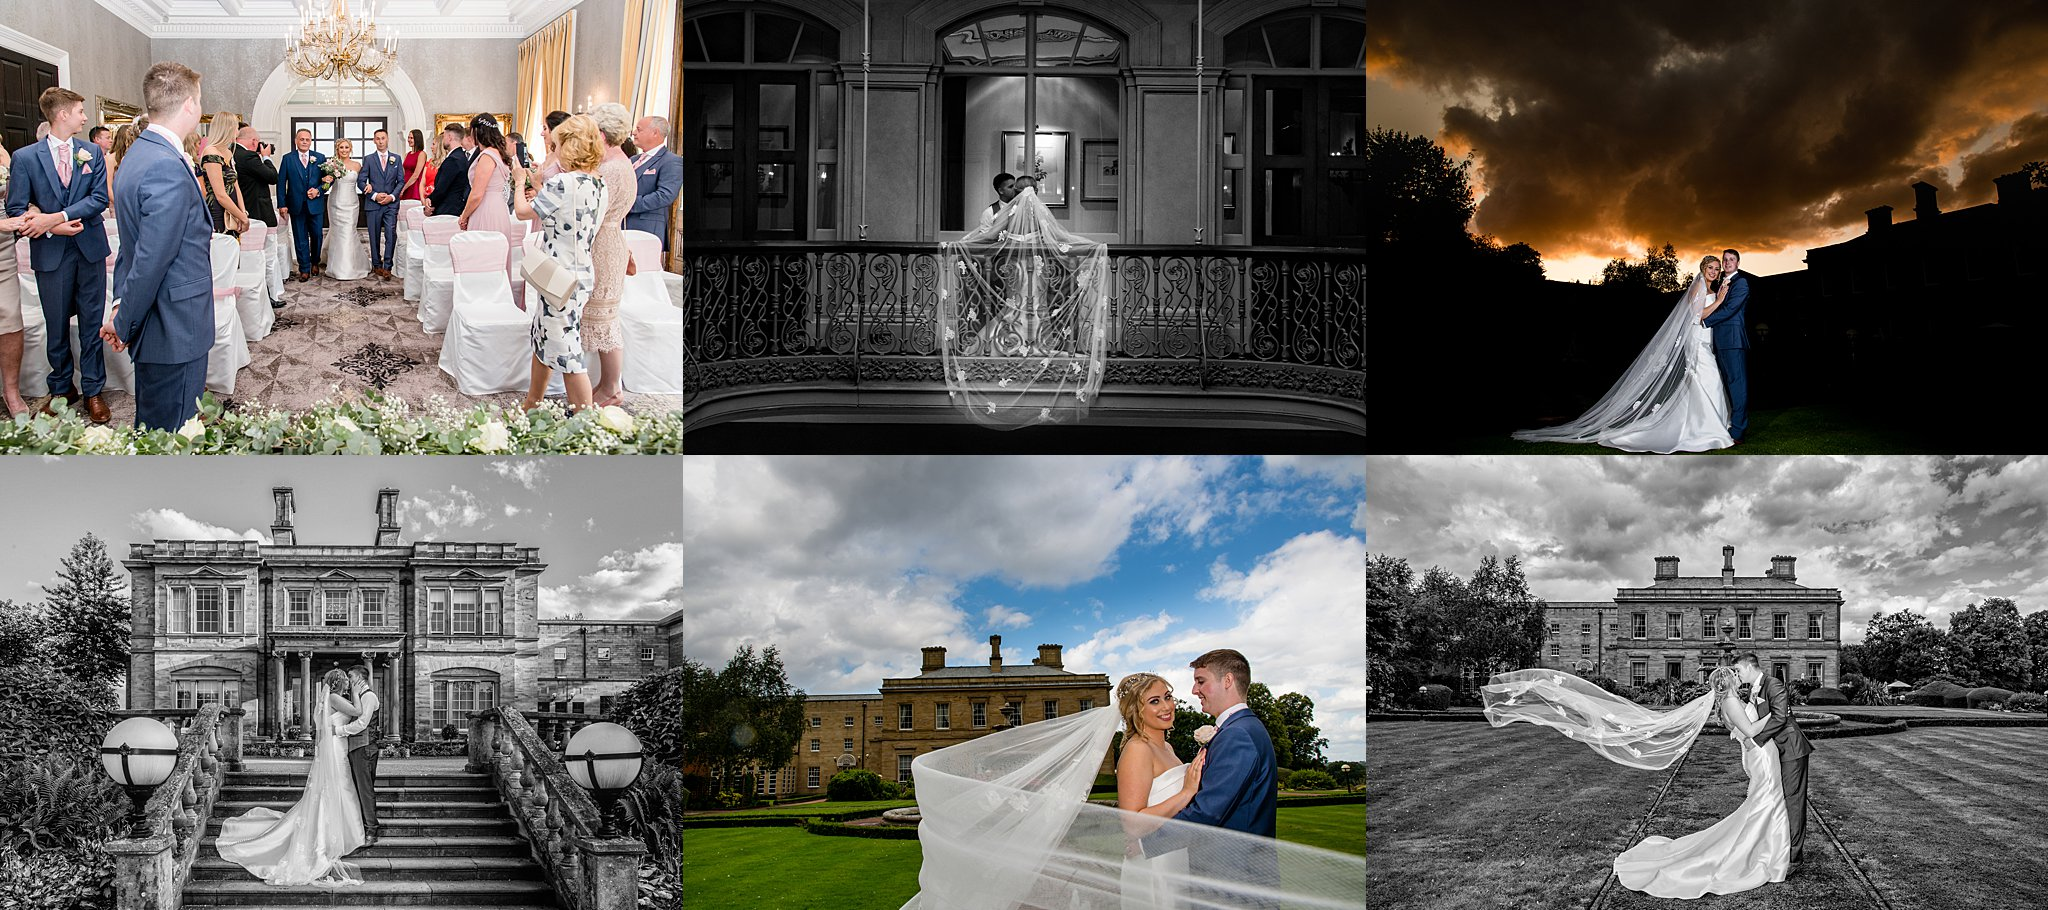 Weddings at Oulton Hall